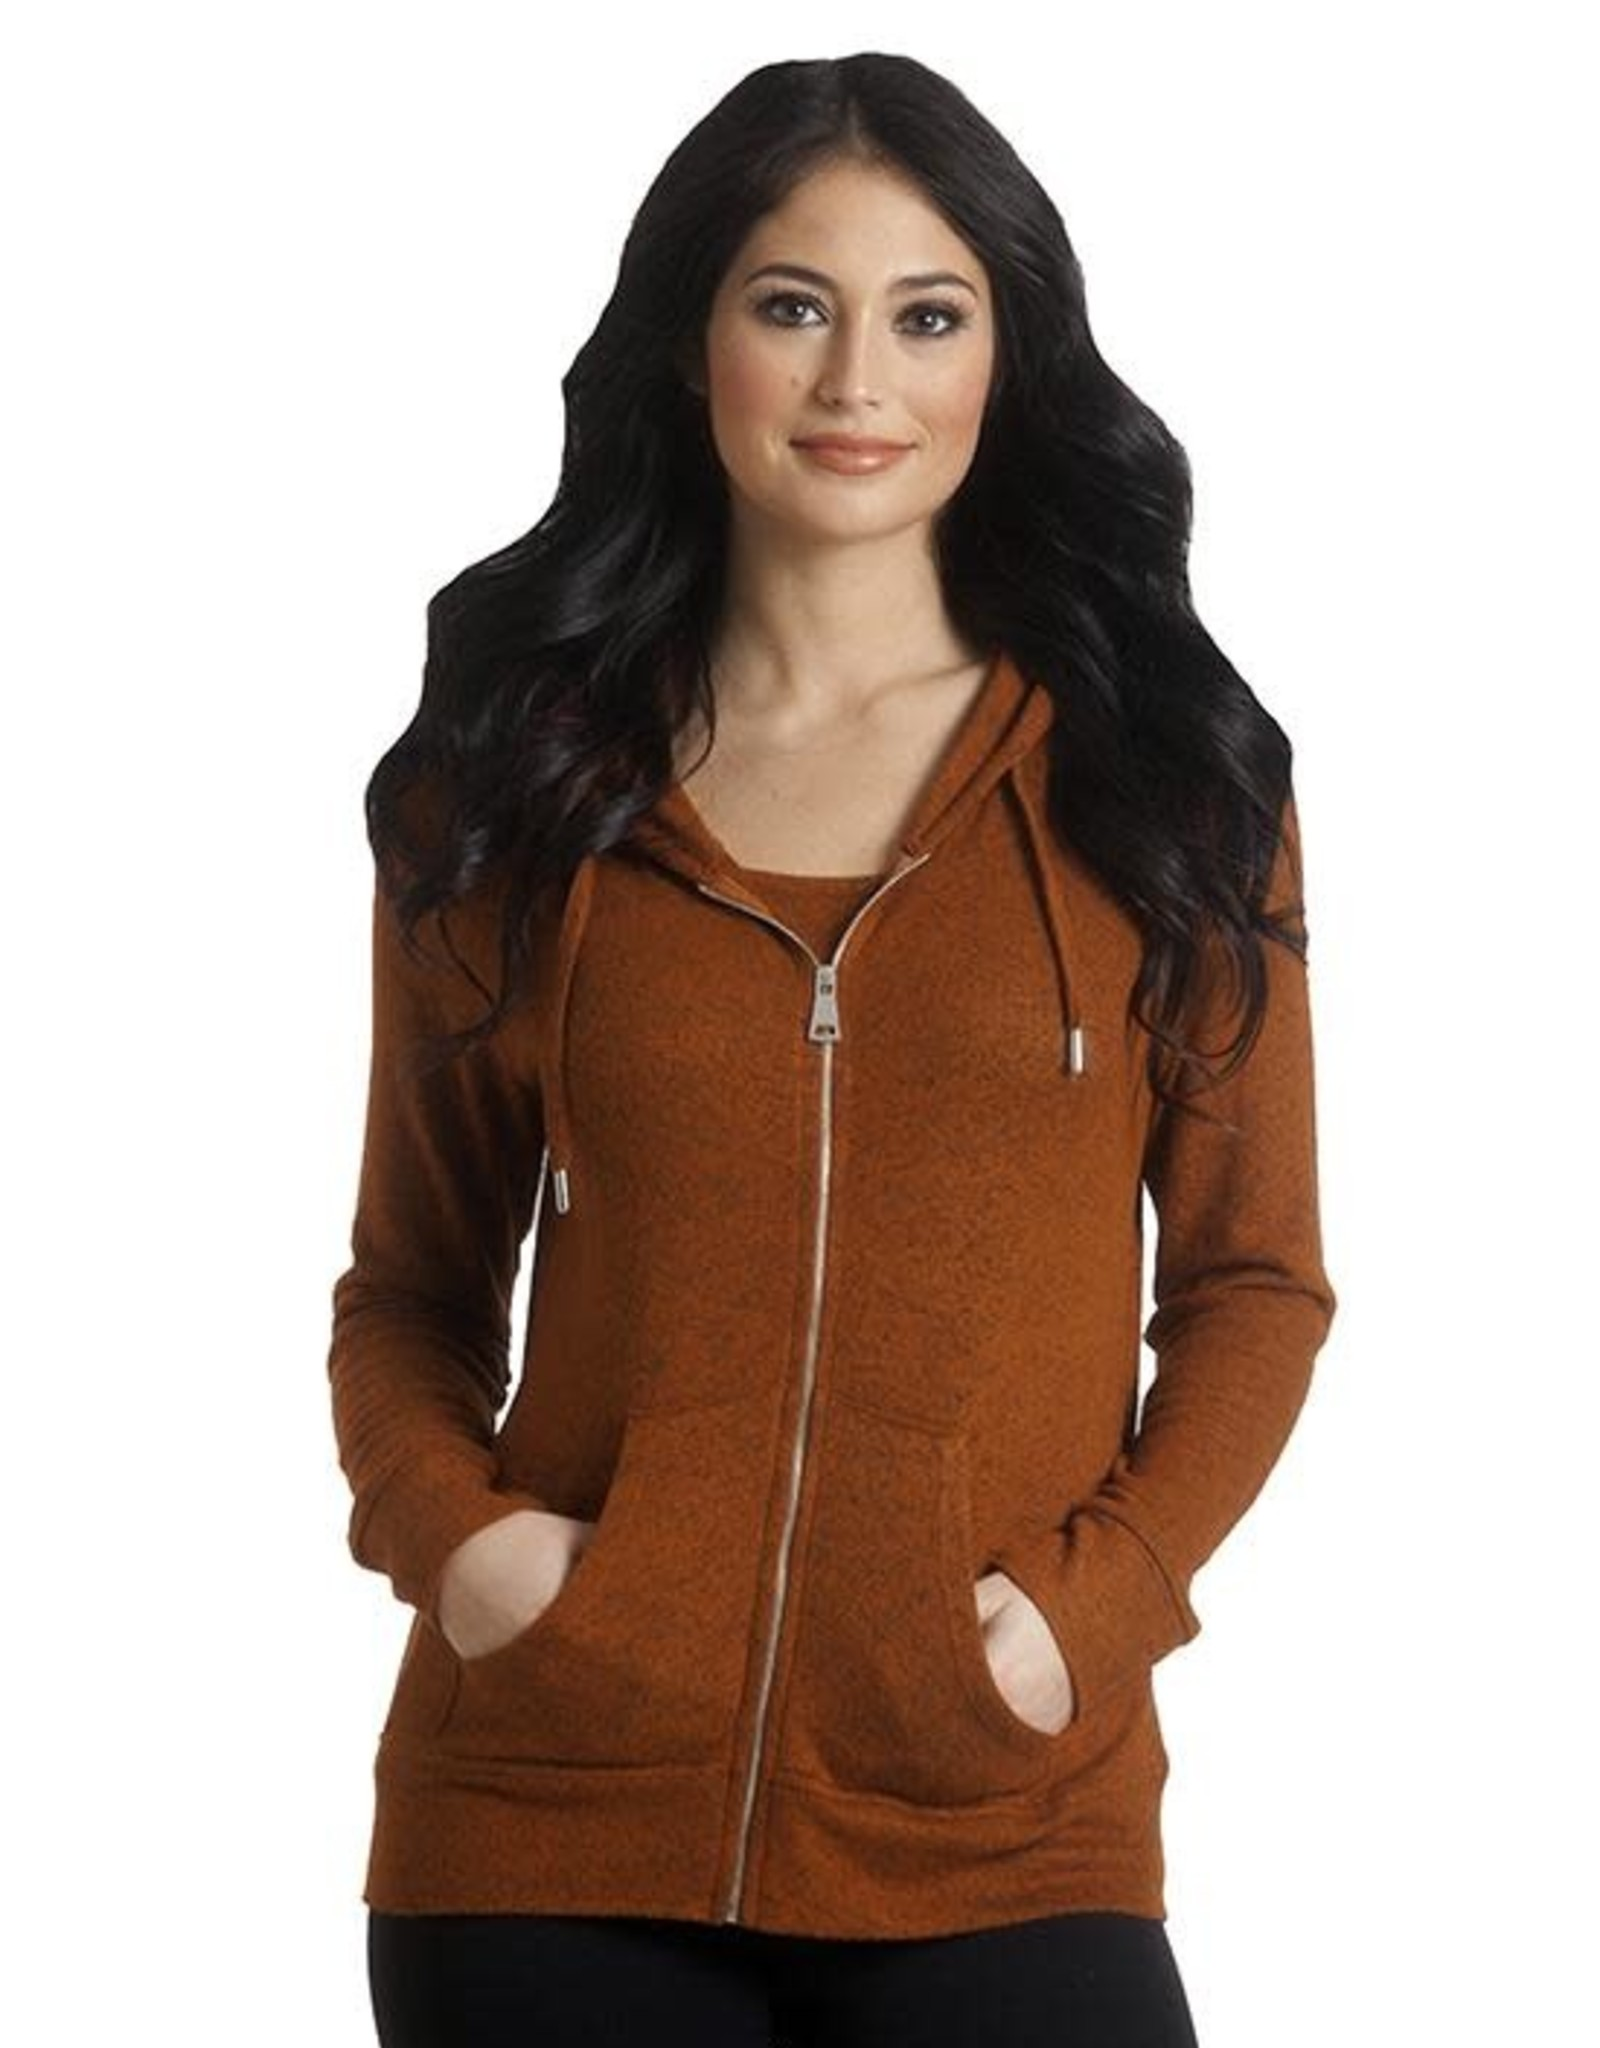 FRENCH KYSS Zip Hoodie Jacket